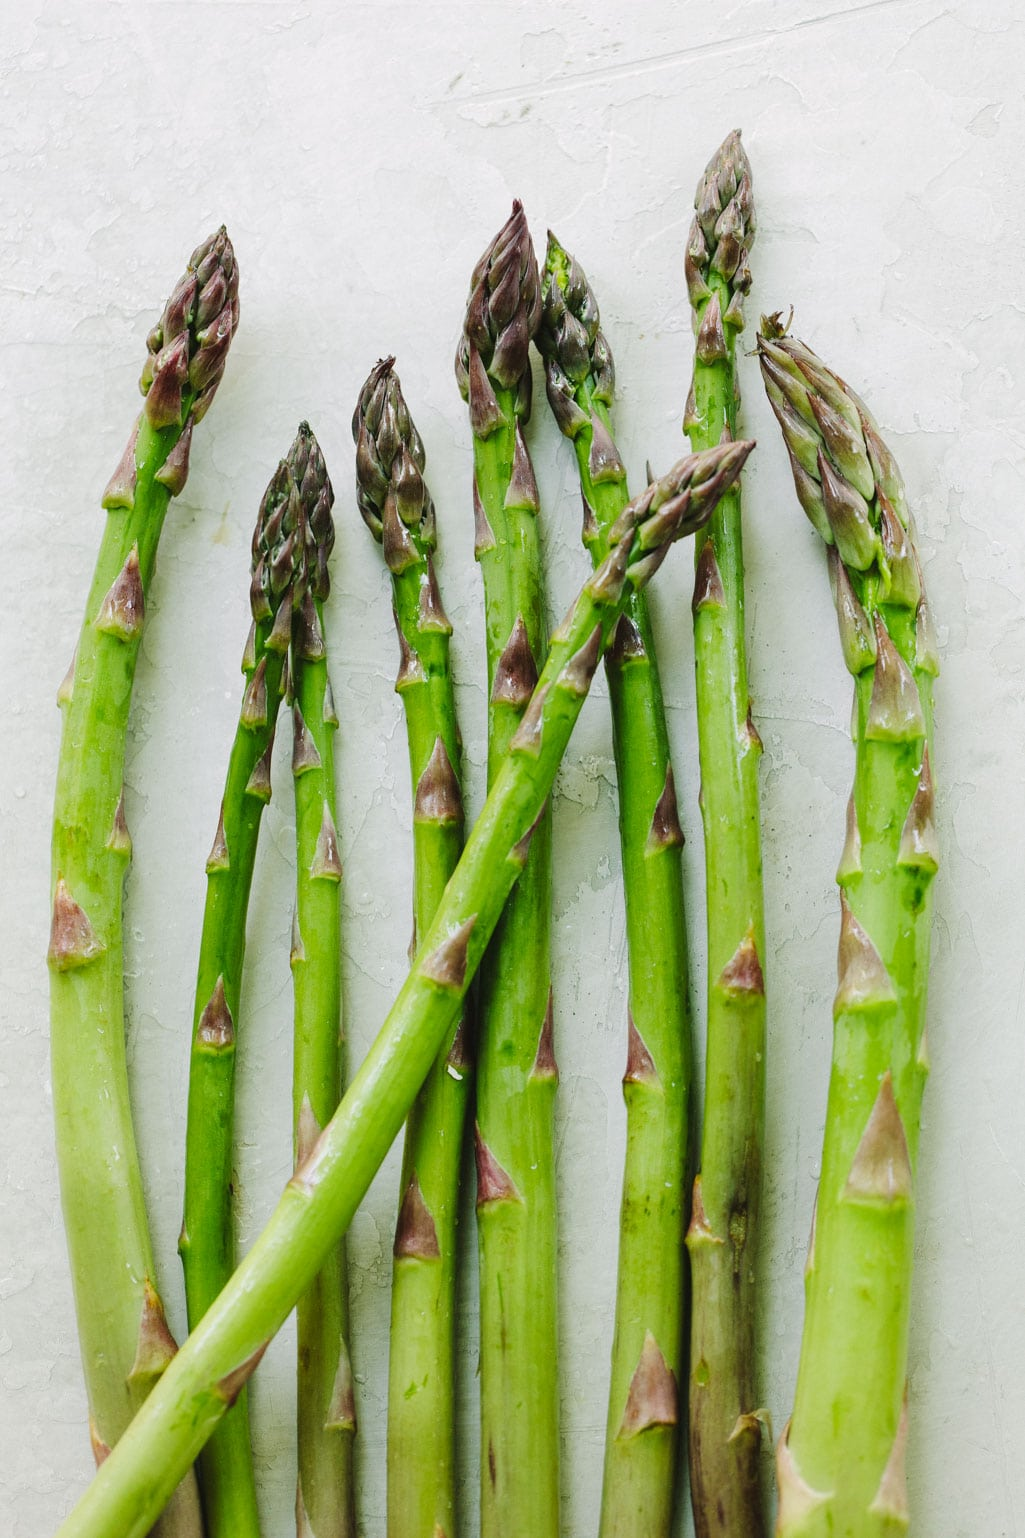 Raw green asparagus spears on a grey background.